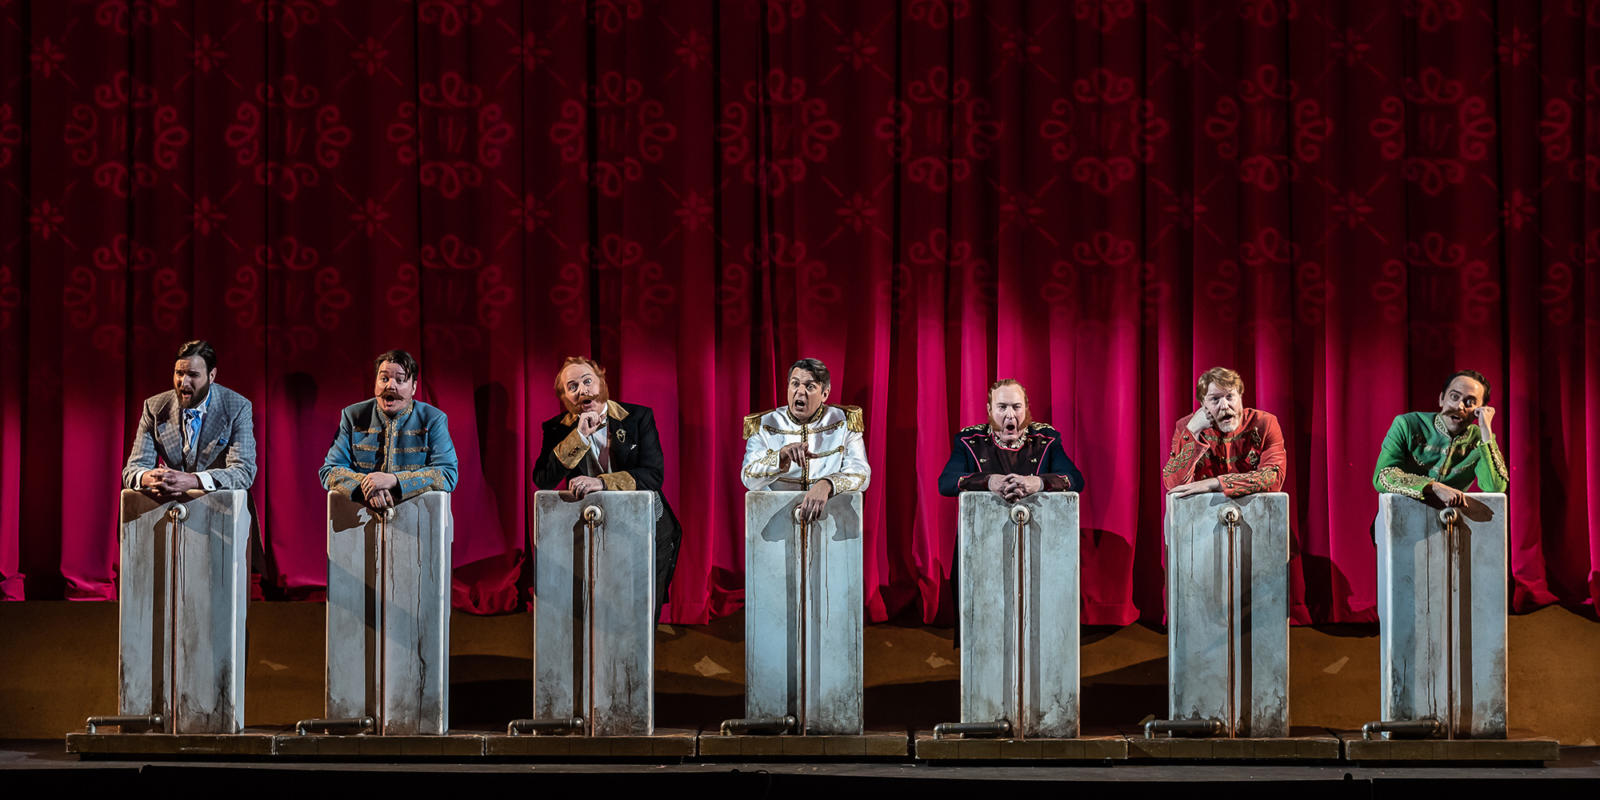 ENO The Merry Widow: (Left to right) Nicholas Lester; Adam Sullivan; Jamie MacDougall; Nathan Gunn; Andrew Shore; Paul Sheehan © Clive Barda